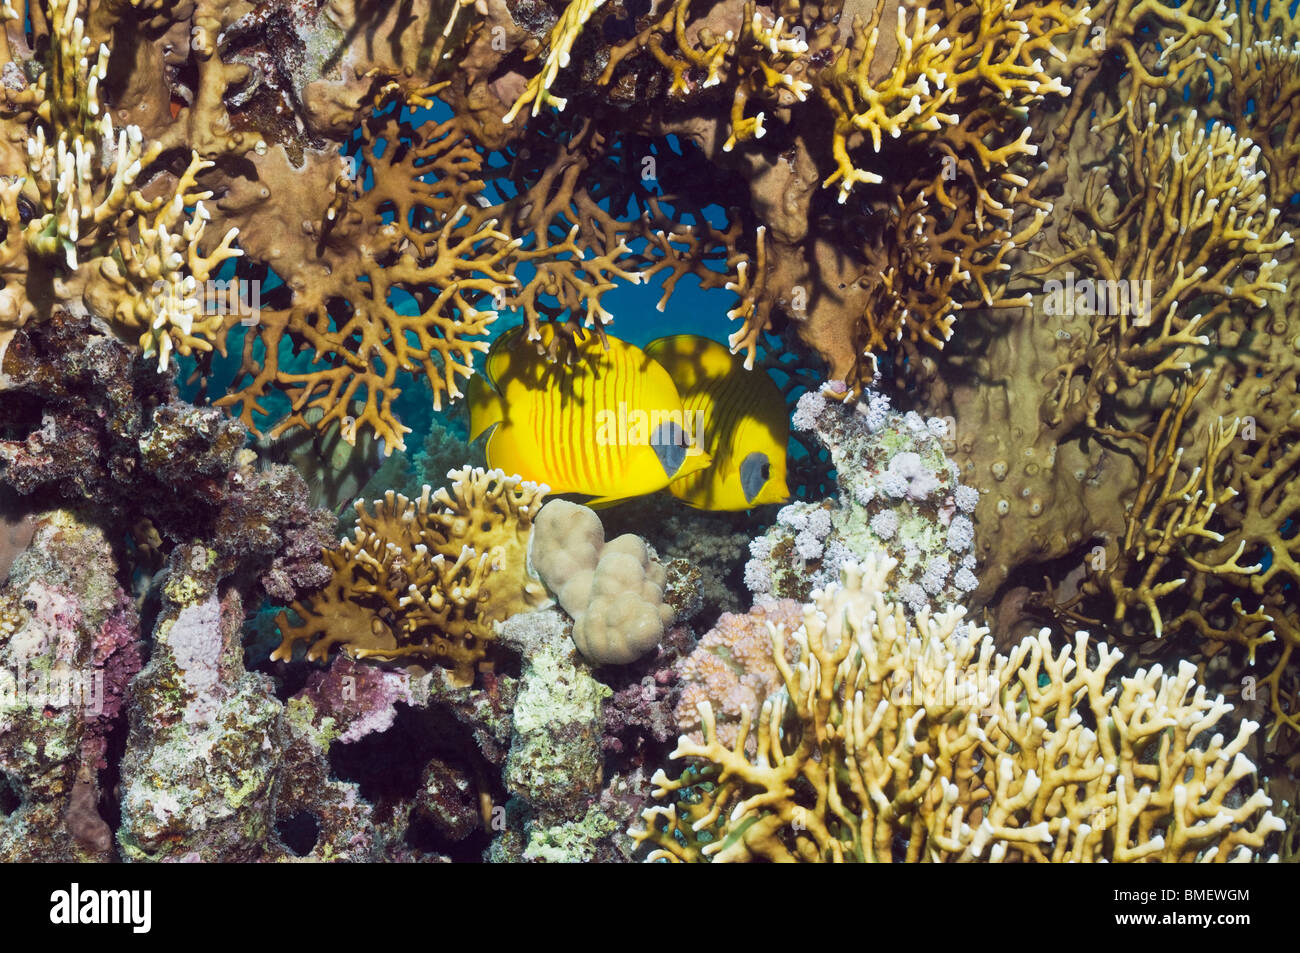 Golden butterflyfish with fire coral on reef.  Egypt, Red Sea. - Stock Image